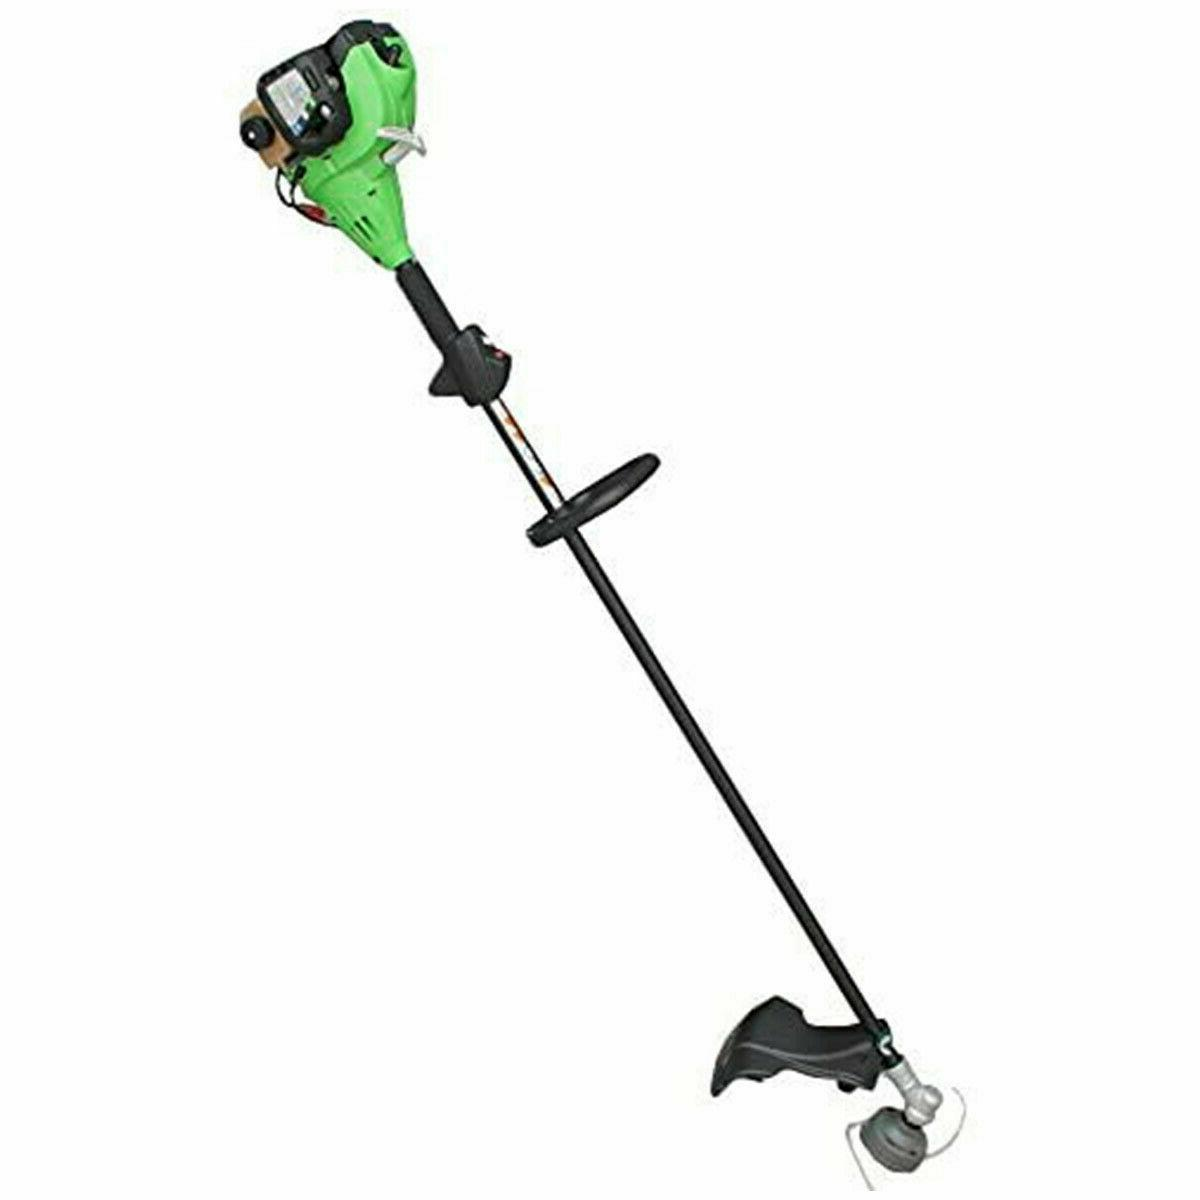 gm22650 grass trimmer gas powered cordless straight